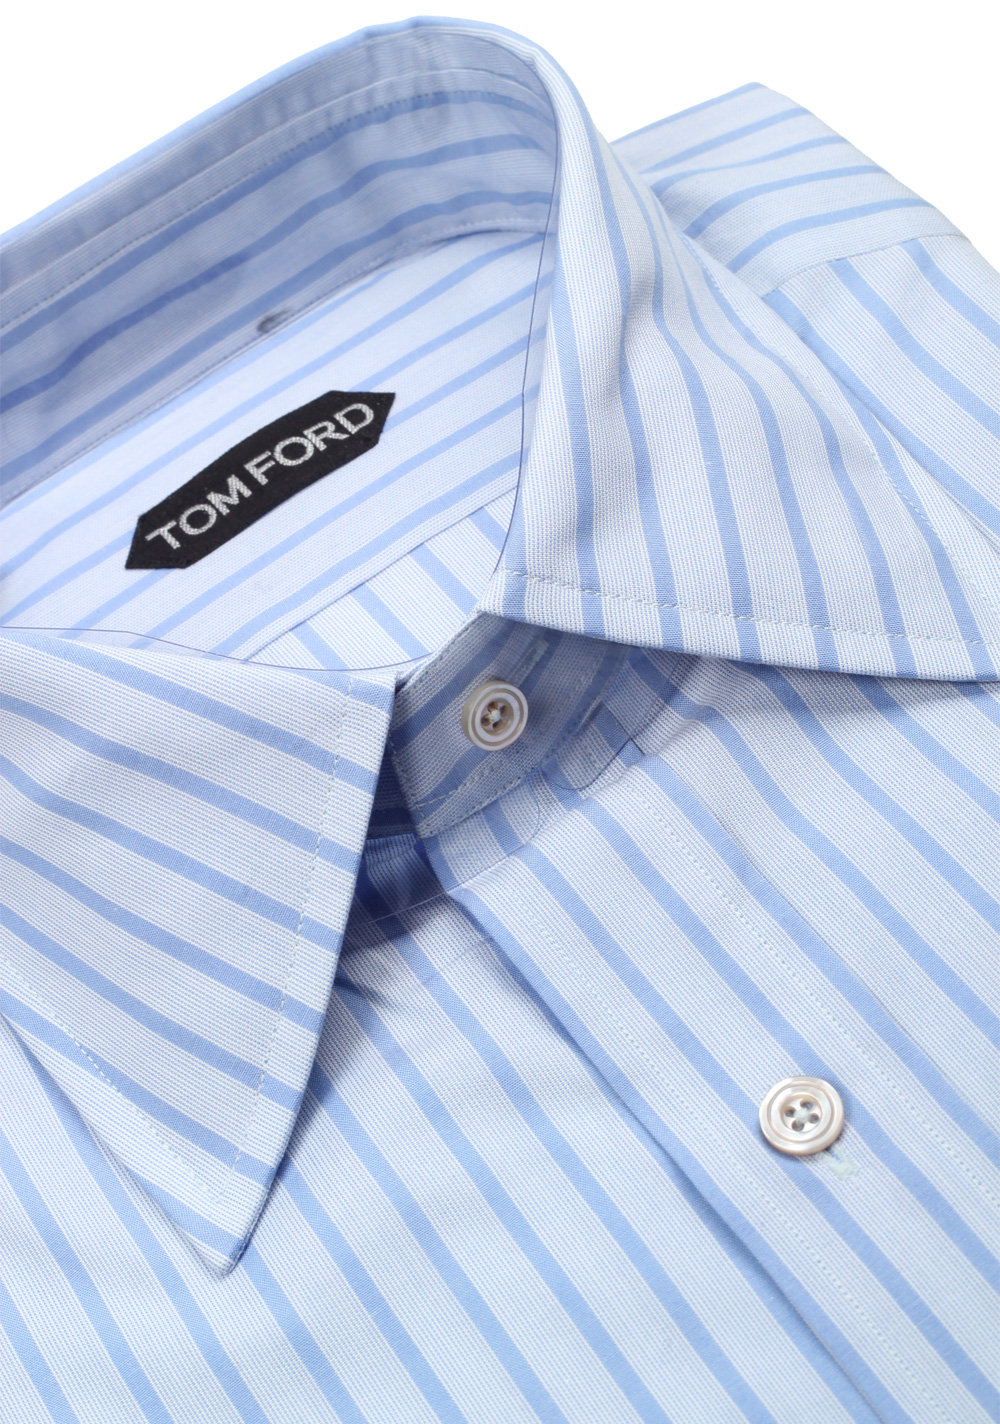 TOM FORD Striped Blue High Collar Dress Shirt Size 40 / 15,75 U.S. | Costume Limité